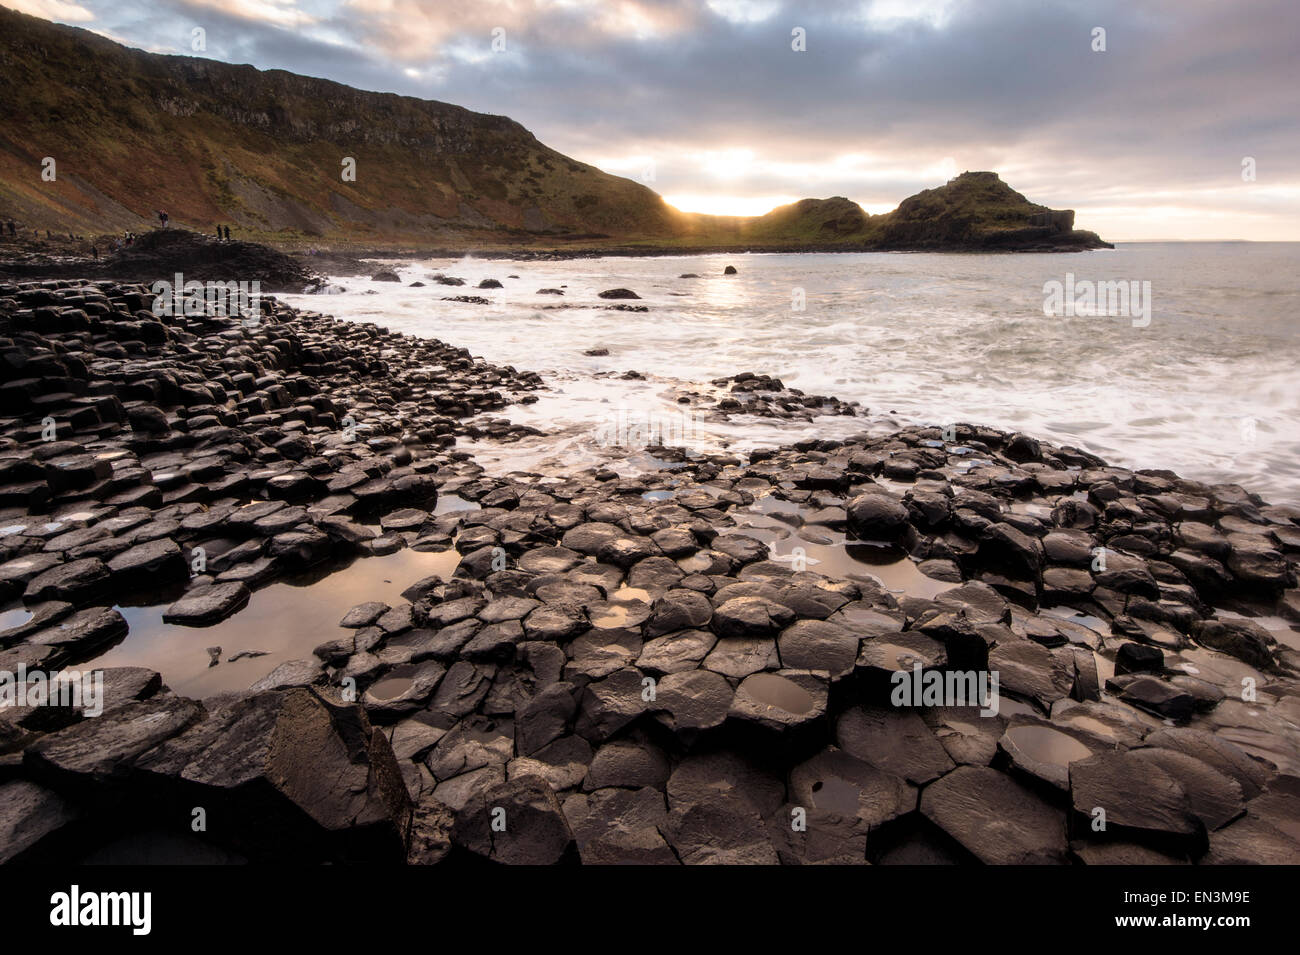 Sunset over Giant's causeway in County Antrim on the northeast coast of Northern Ireland.  Credit: Euan Cherry - Stock Image